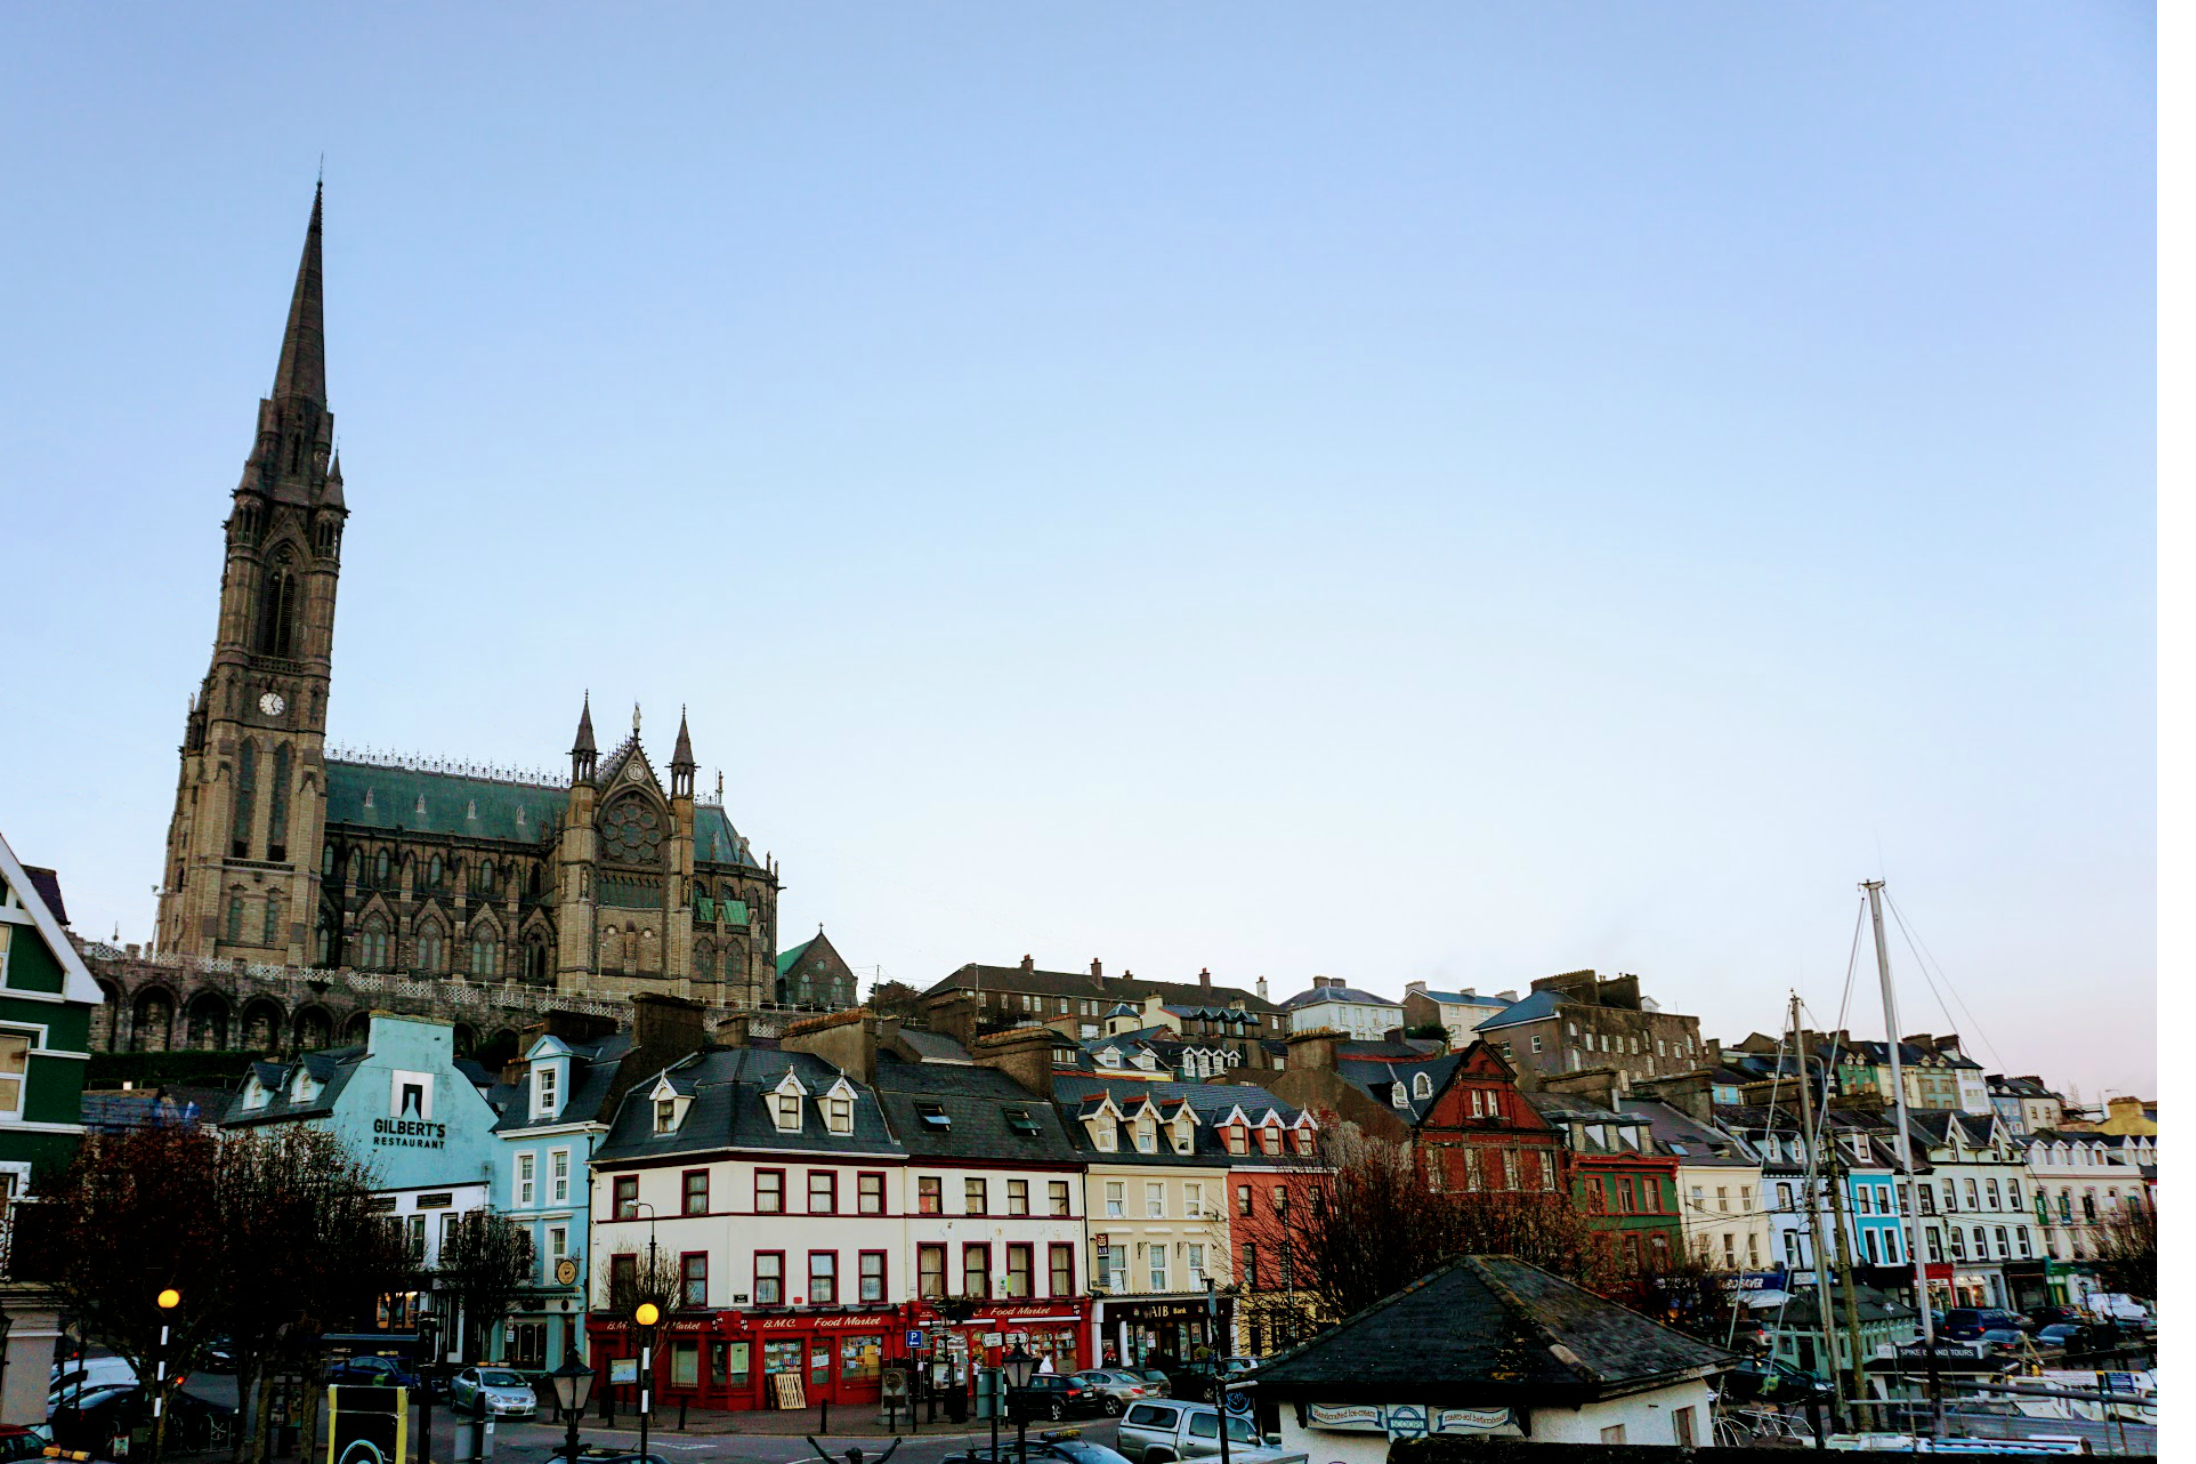 St. Colman's Cathedral towering above the harbor town of Cobh.